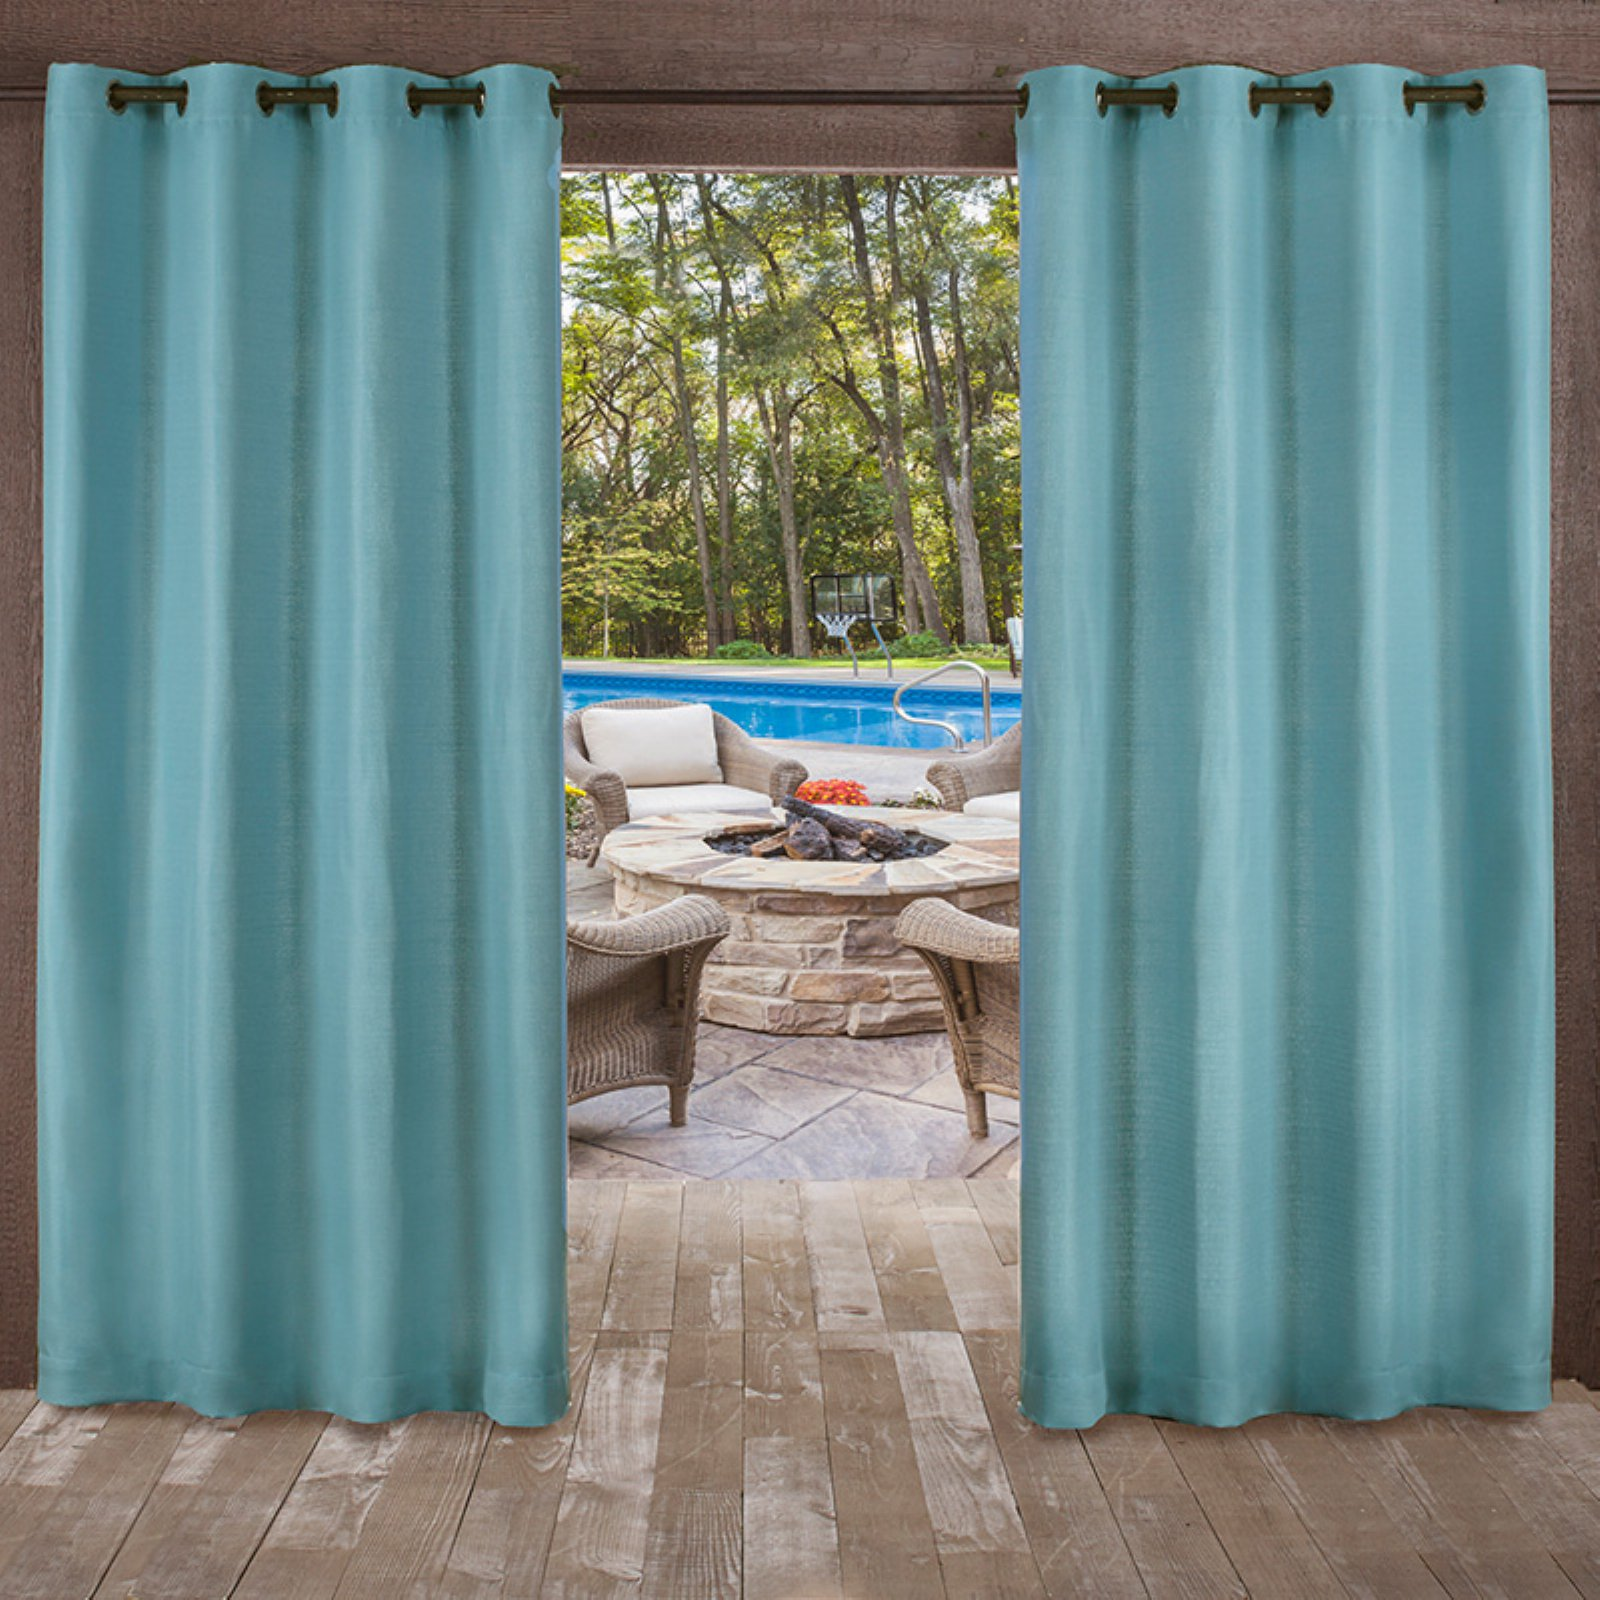 Exclusive Home Curtains 2 Pack Delano Heavyweight Textured Indoor/Outdoor Grommet Top Curtain Panels